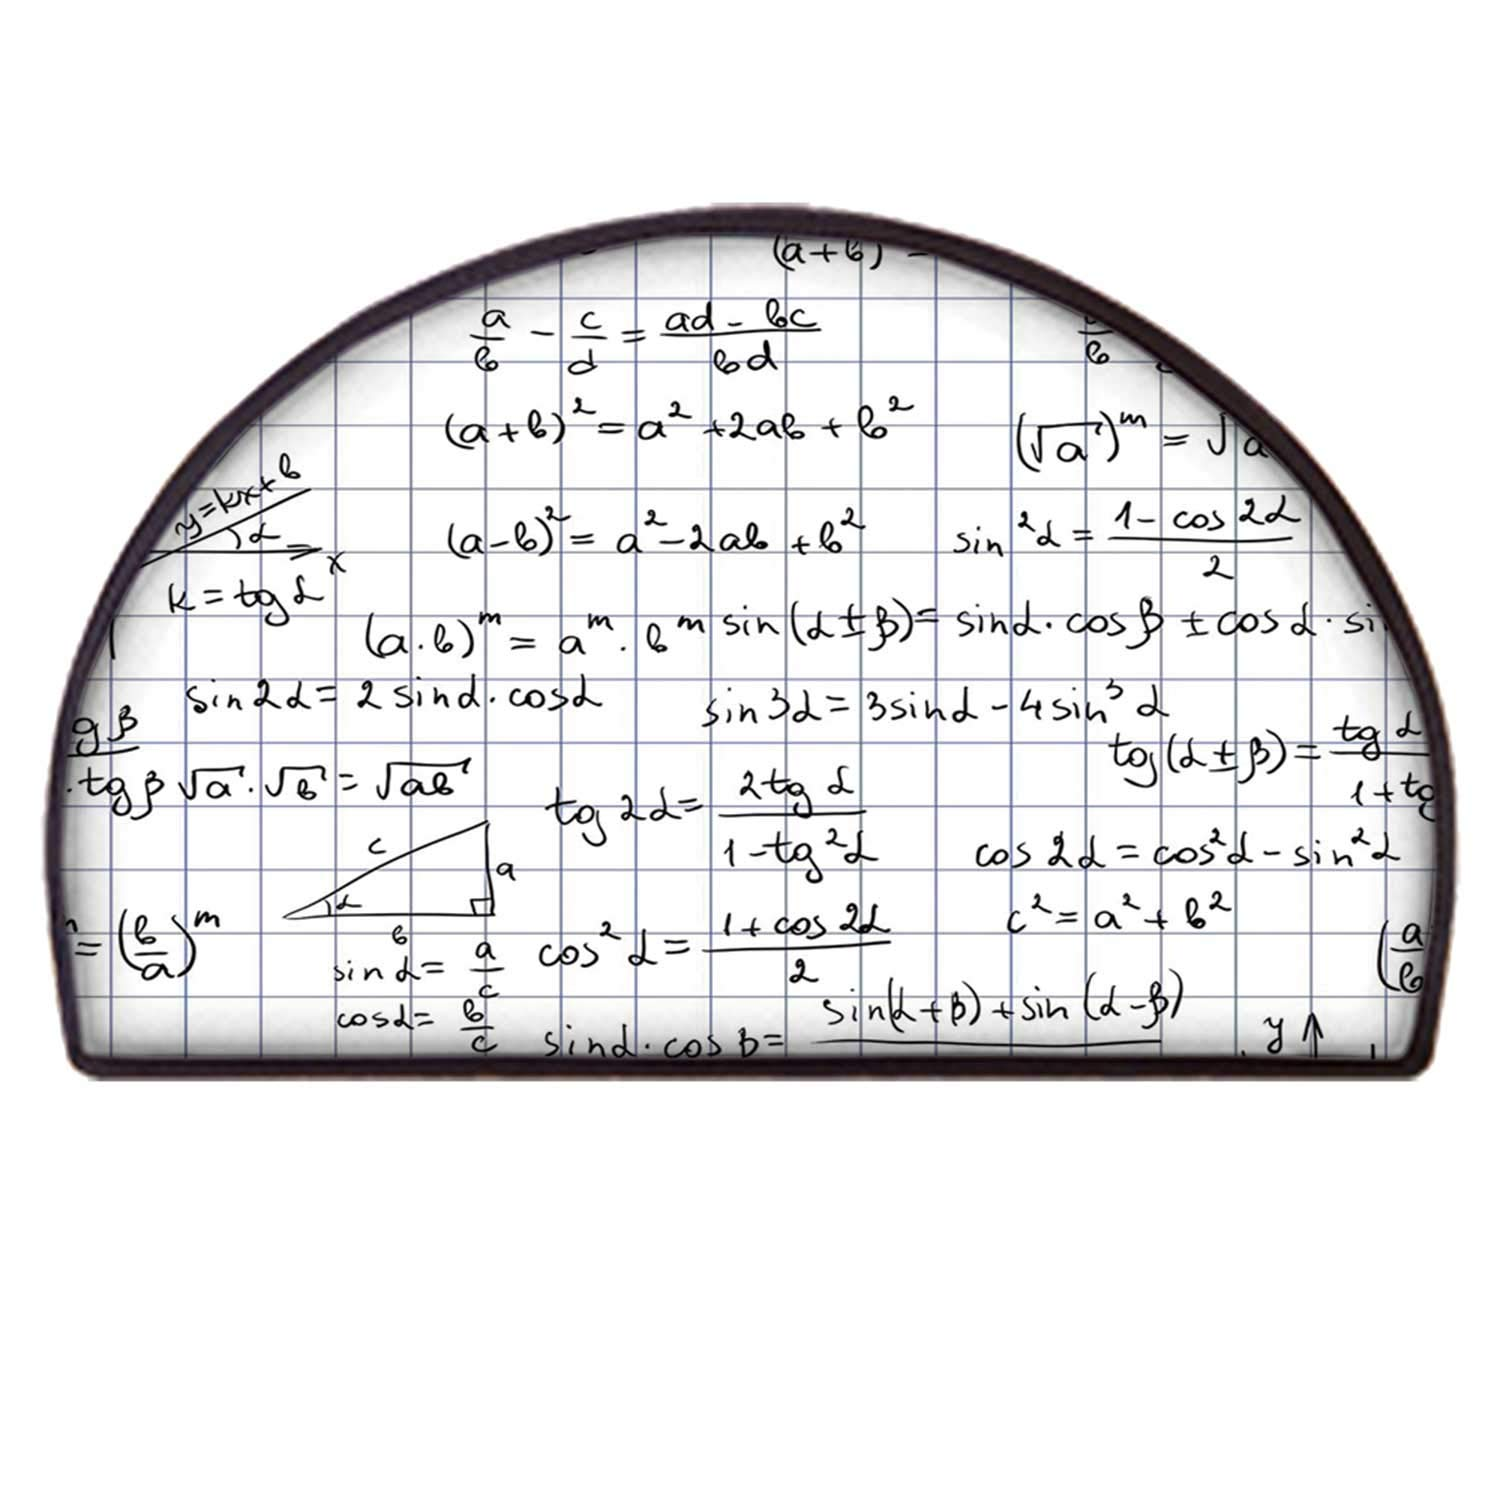 C COABALLA Mathematics Classroom Decor Classical Semicircle Mat,Squared Notebook Page Lesson Notes Student Print for Home Office,85 x 170cm / 33.46 x 66.92 inch by C COABALLA